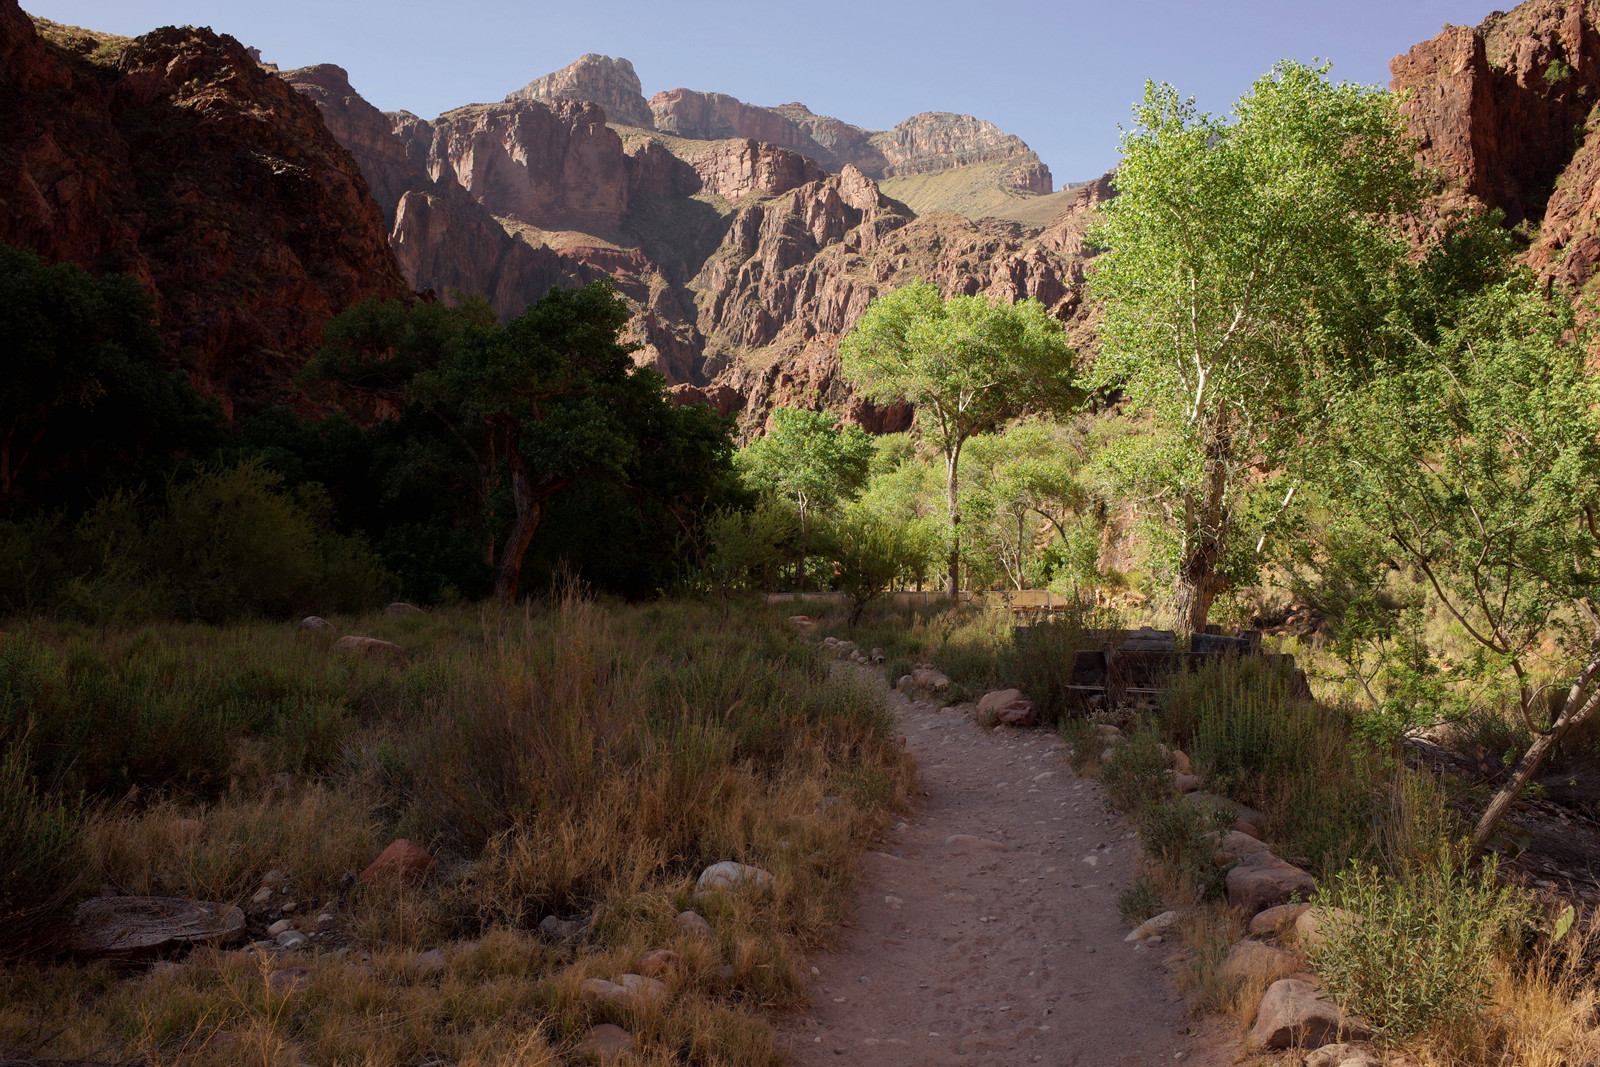 North Kaibab Trail between Phantom Ranch and Bright Angel Campground